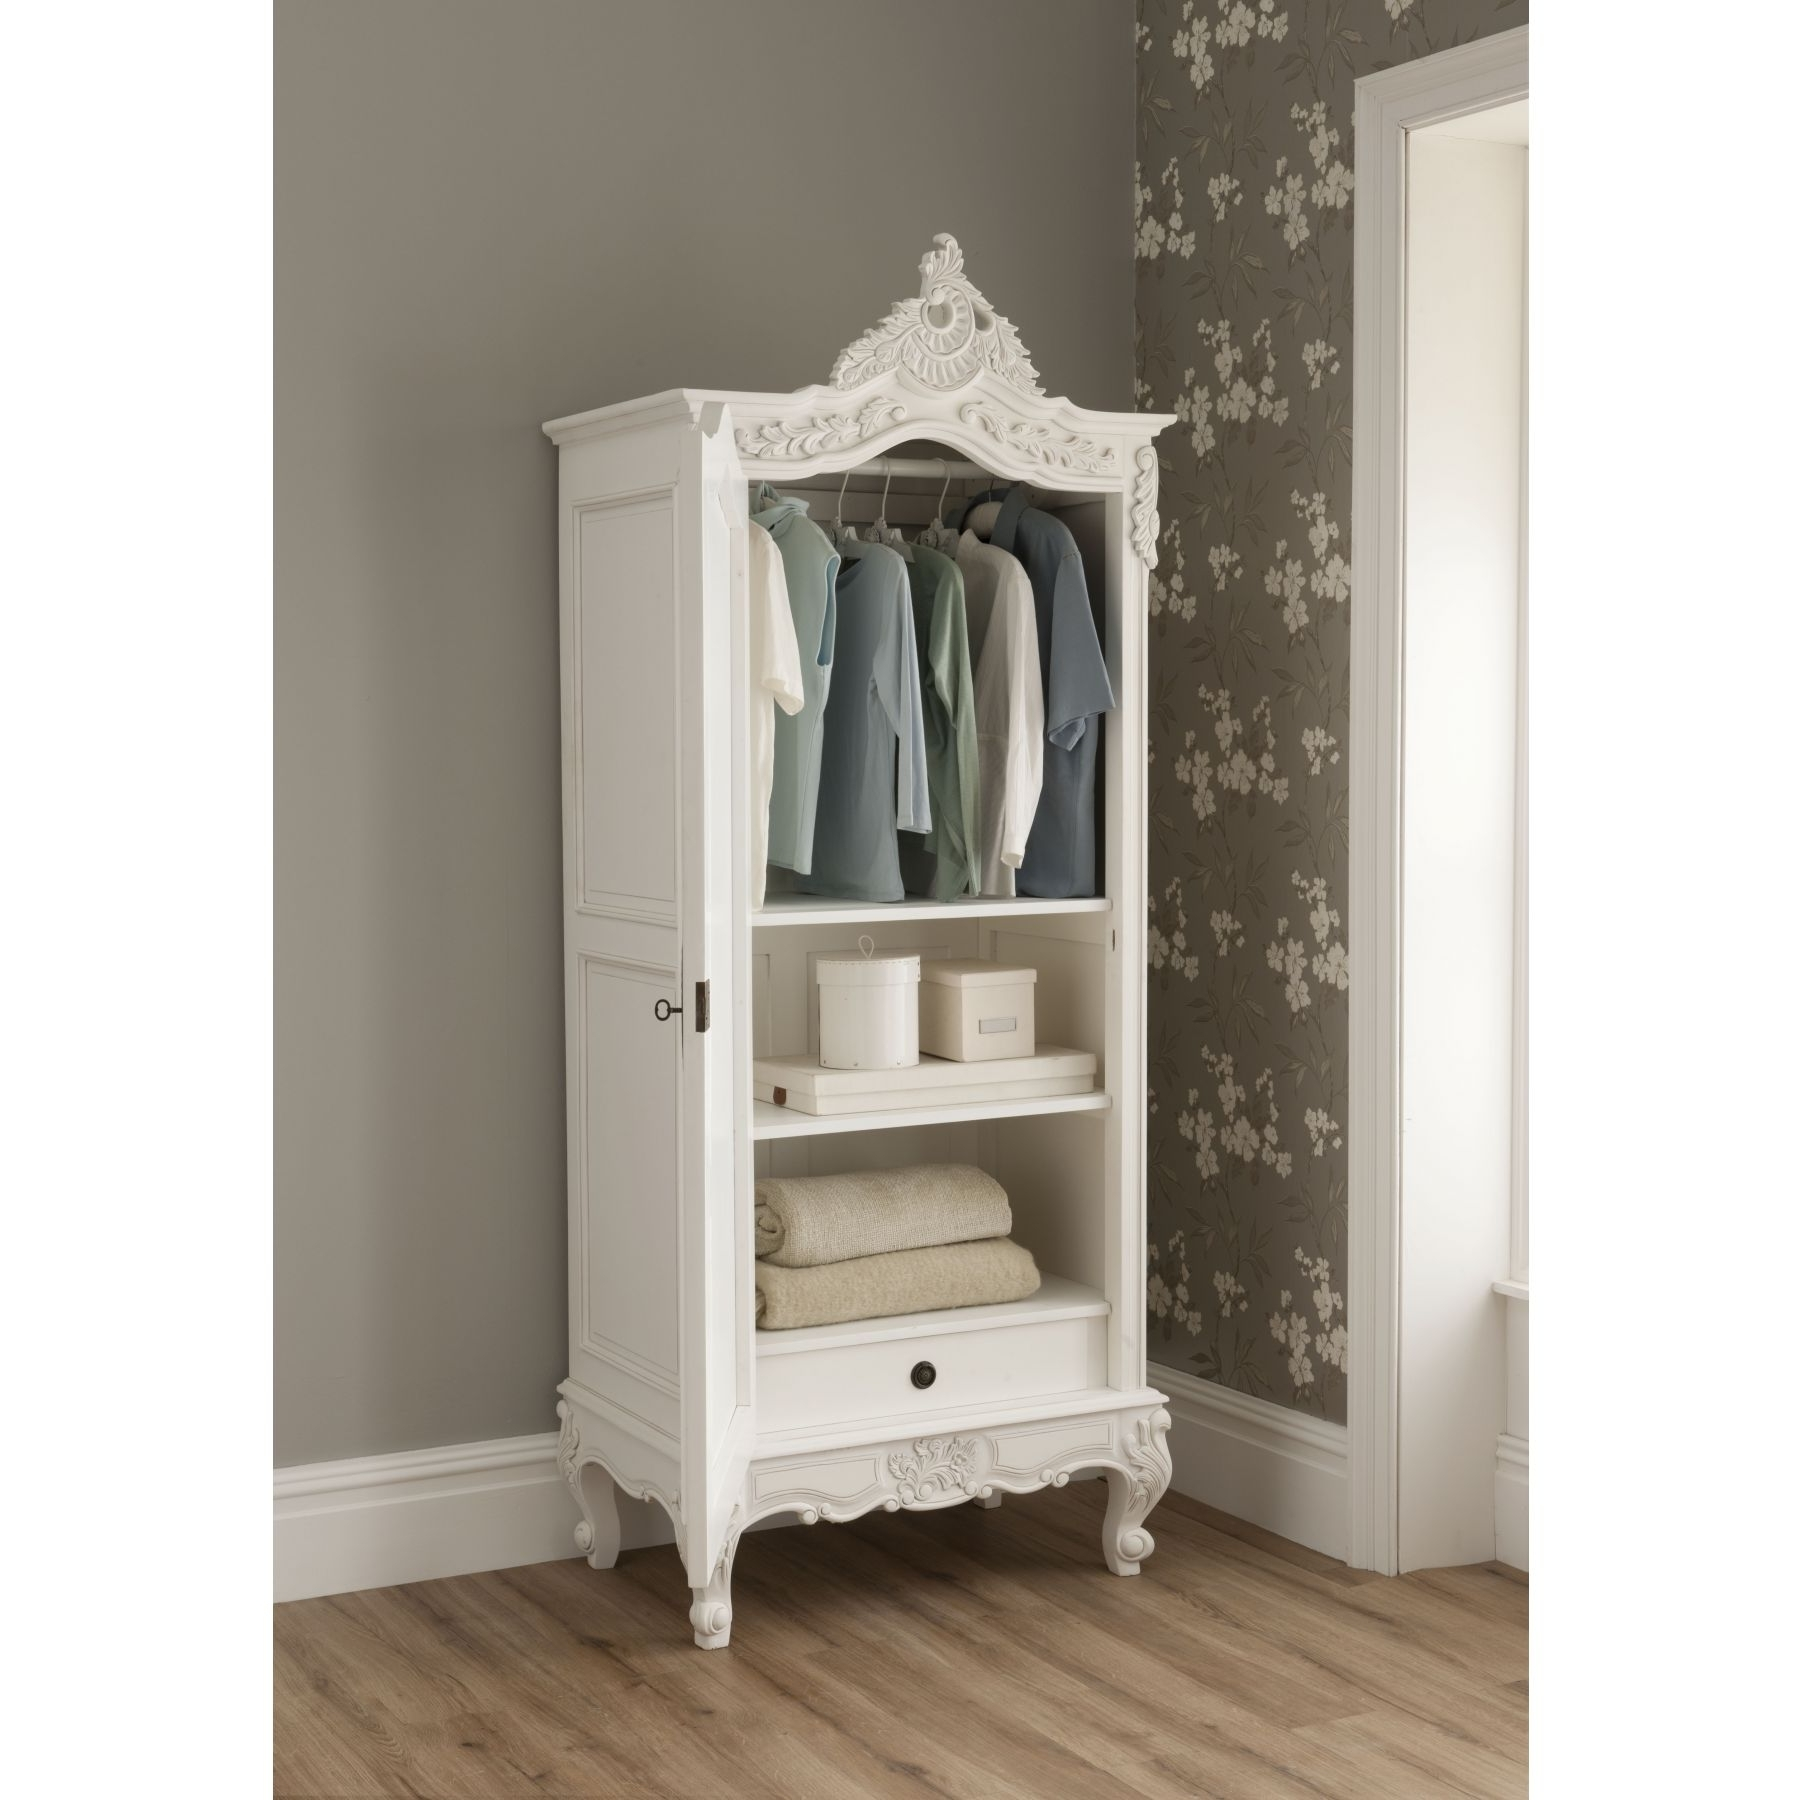 Latest La Rochelle Mirrored Antique French 1 Door Wardrobe Throughout French Shabby Chic Wardrobes (View 10 of 15)